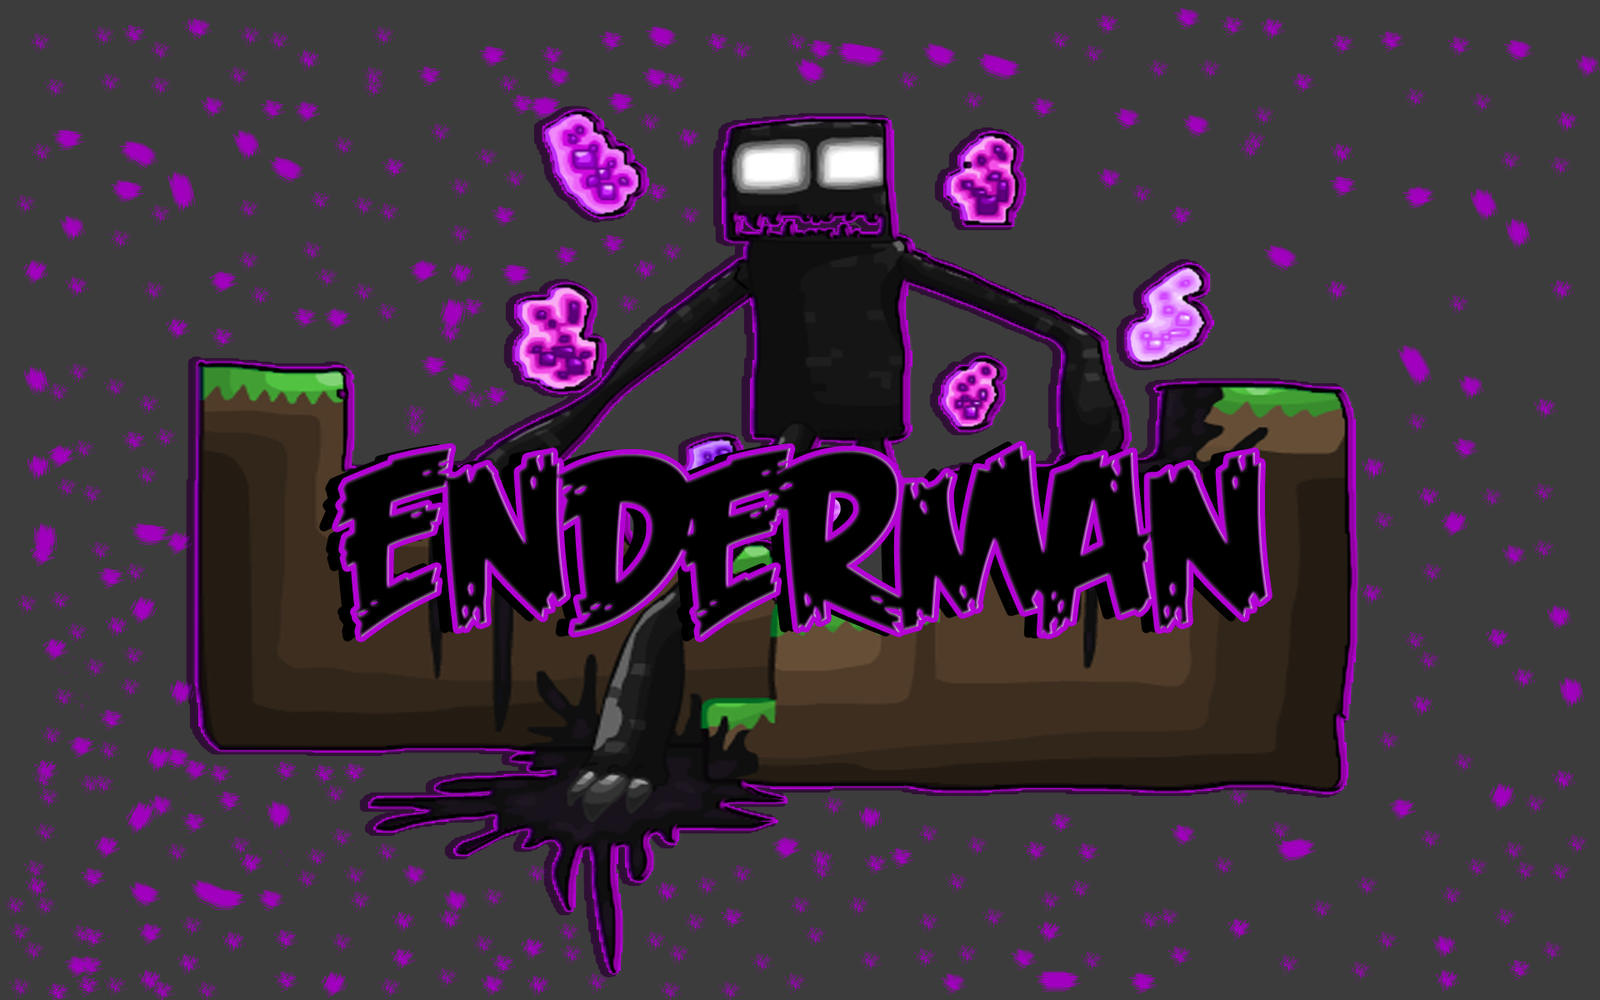 enderman minecraft wallpaper wolf - photo #26